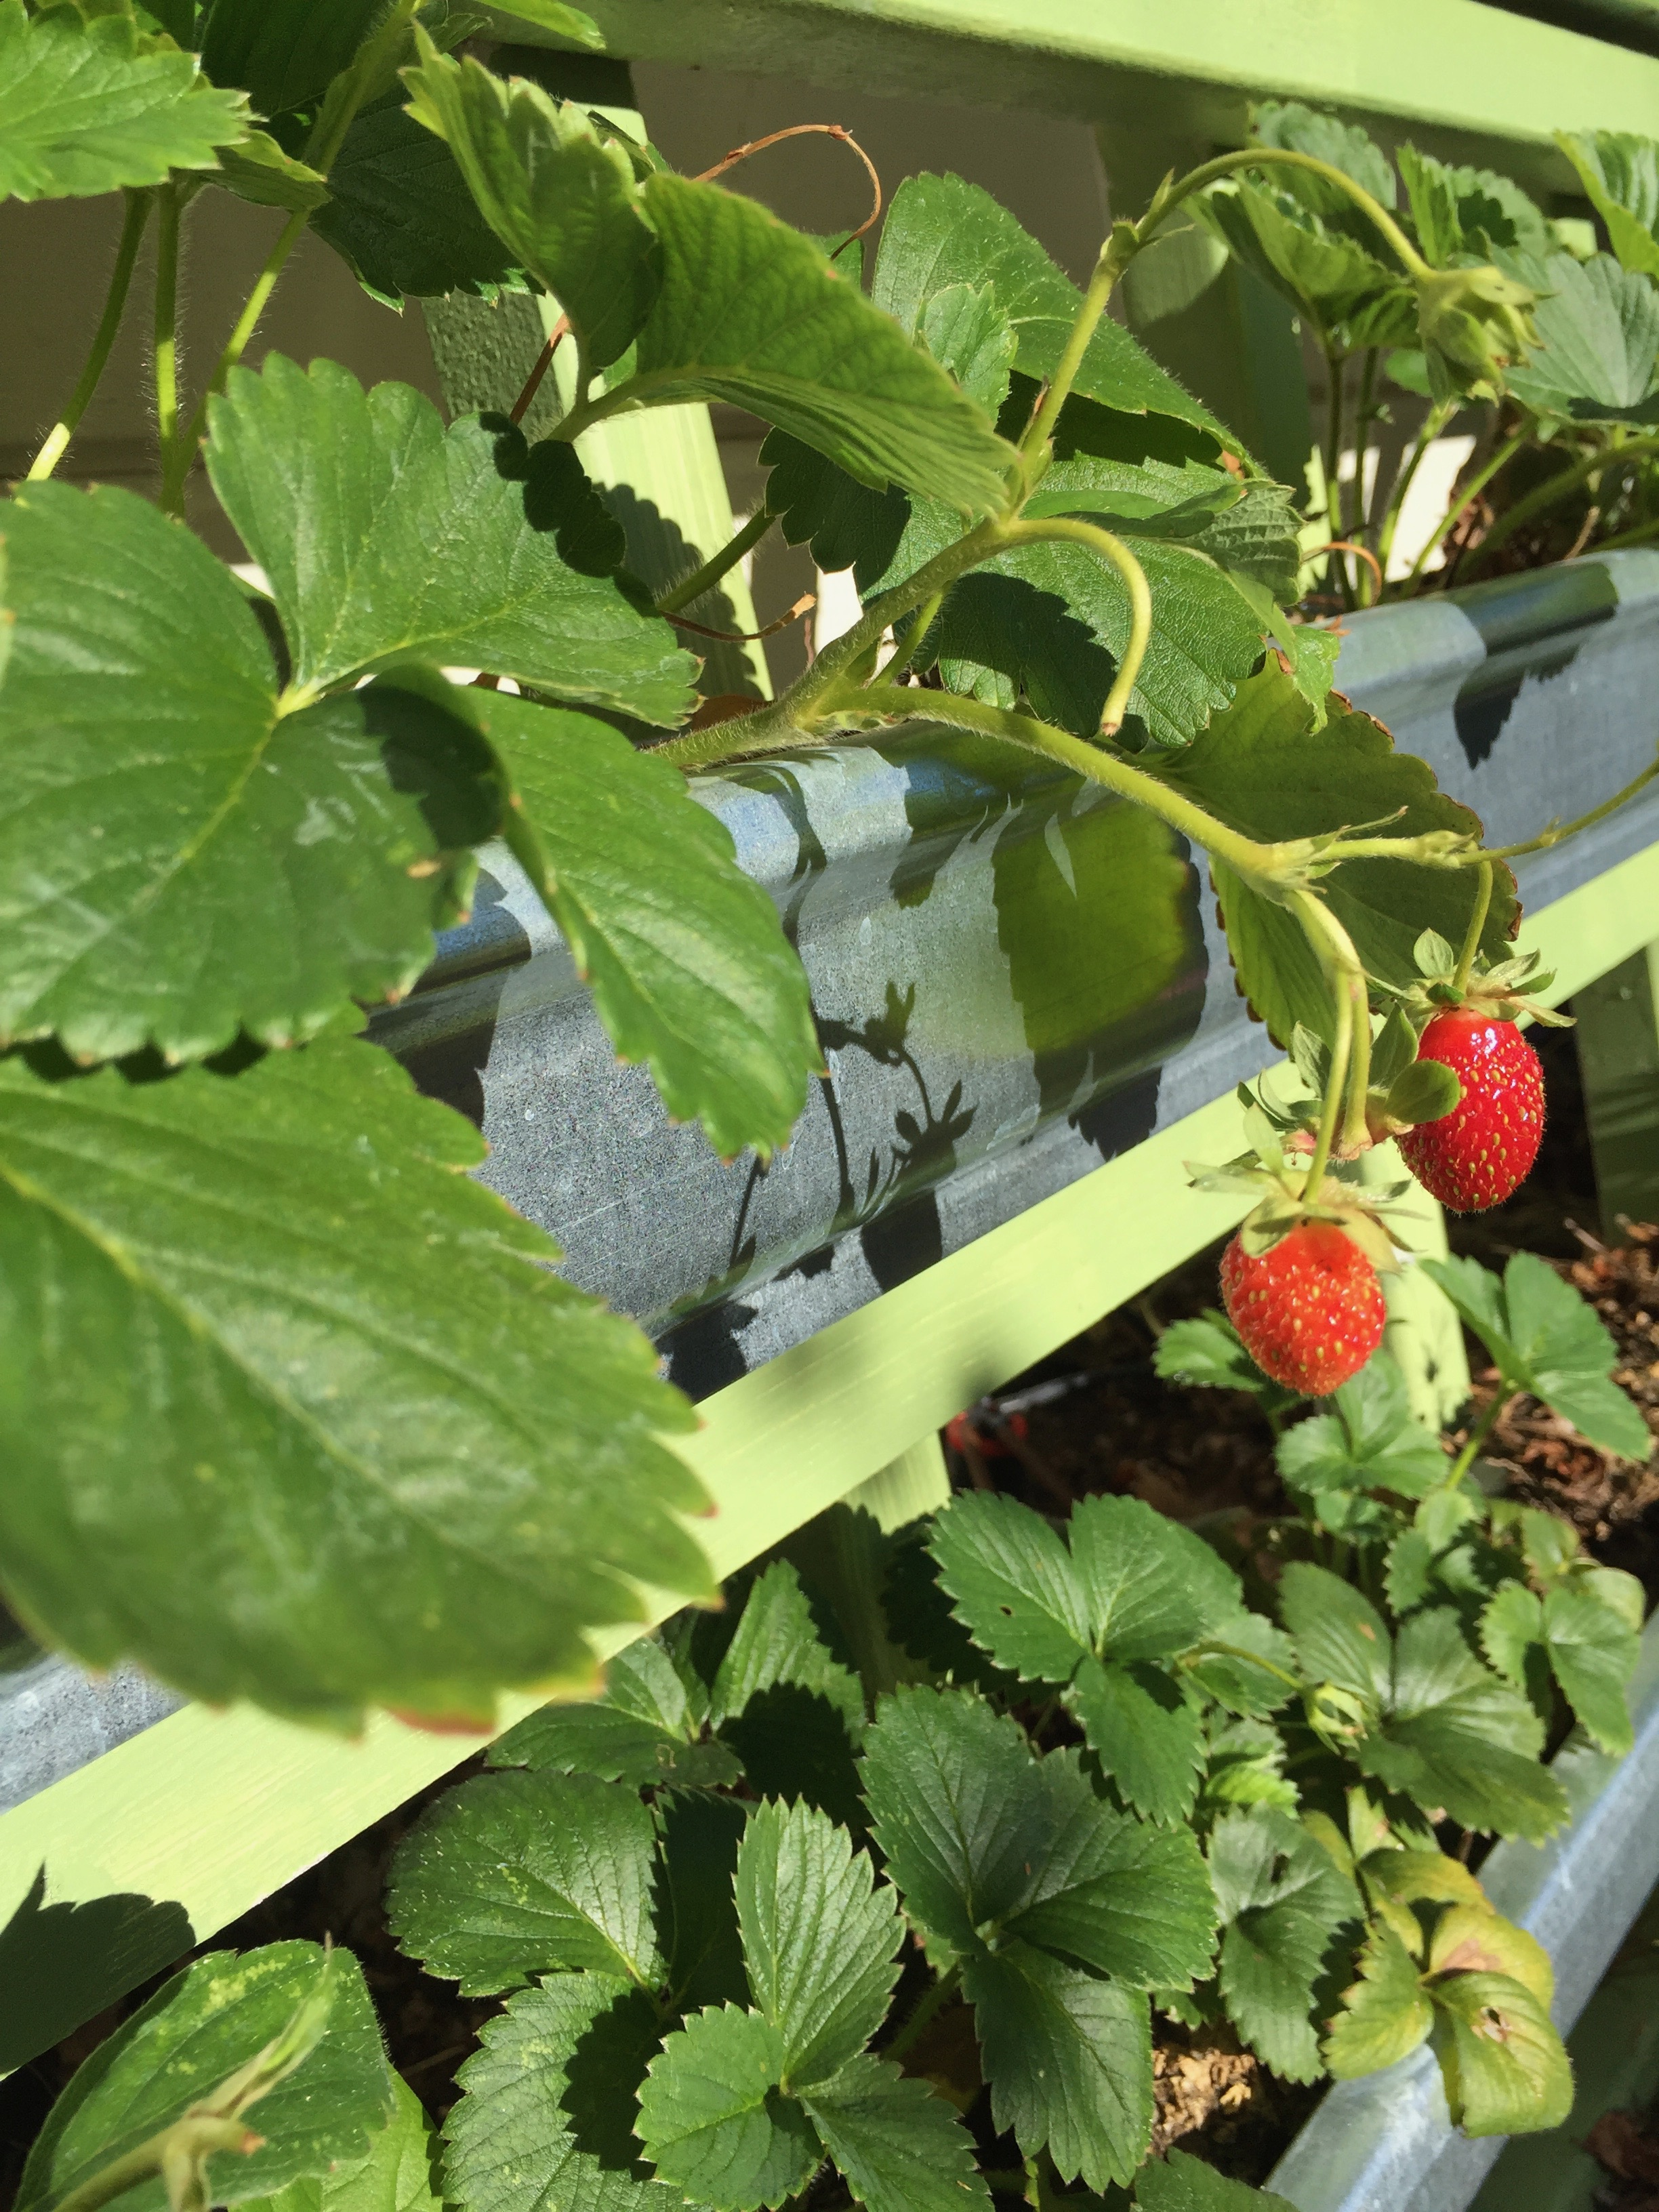 We're still getting strawberries and blueberries every day. The blackberries are also starting to ripen.